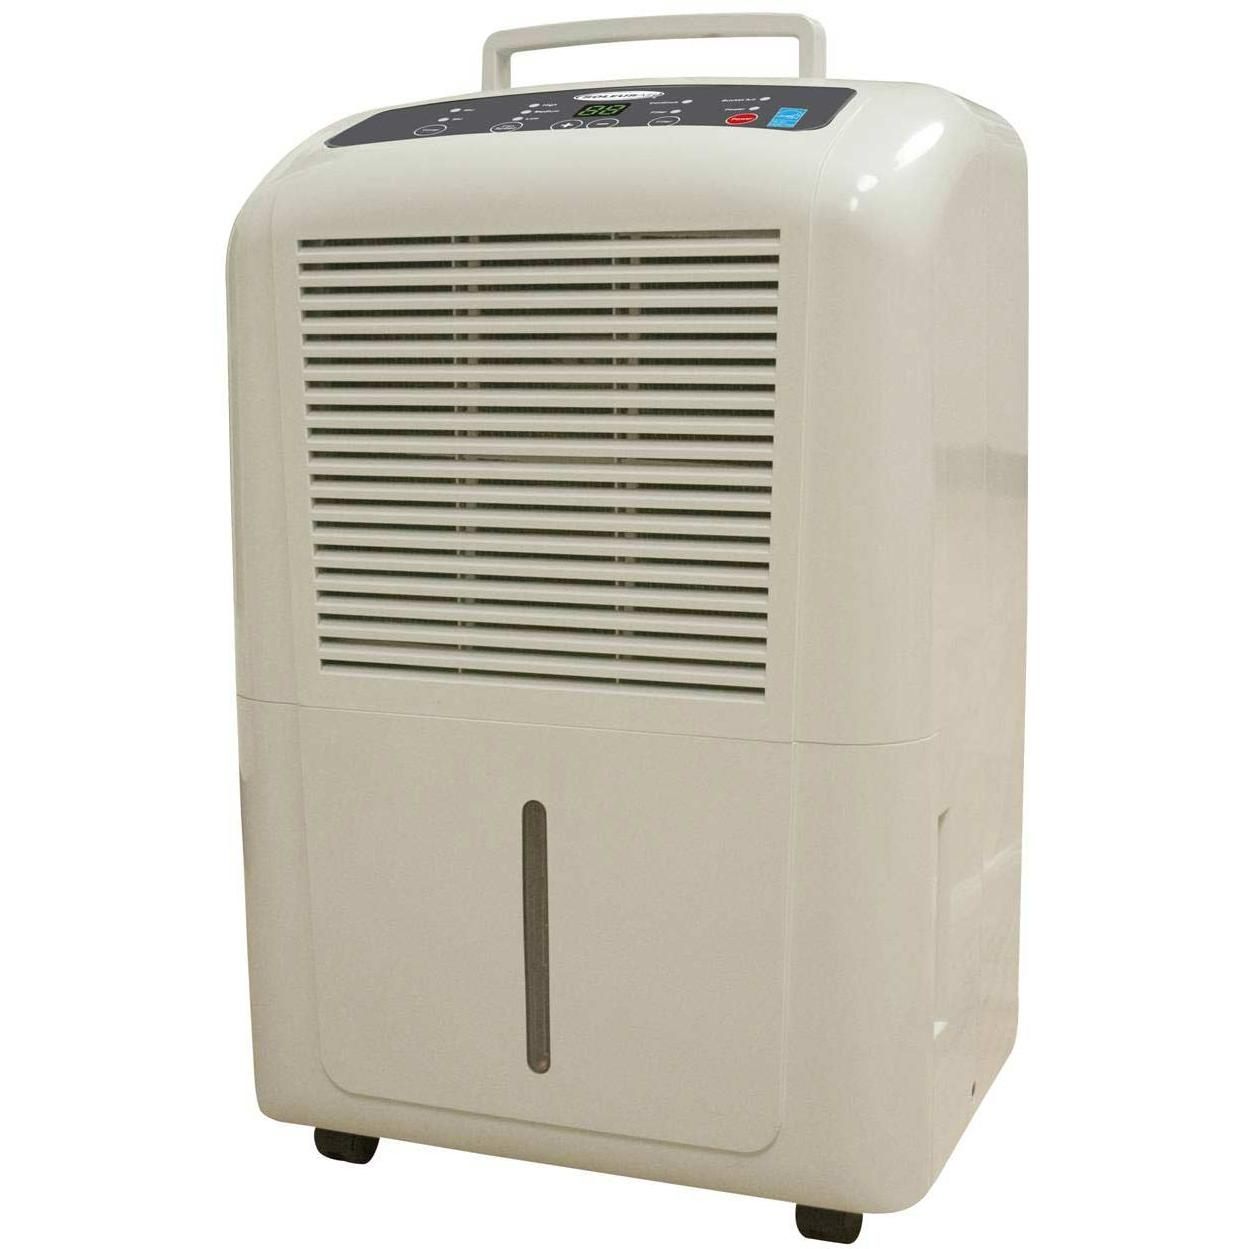 Soleus DP1-30-03 30 Pint Portable Dehumidifier With Energy Star